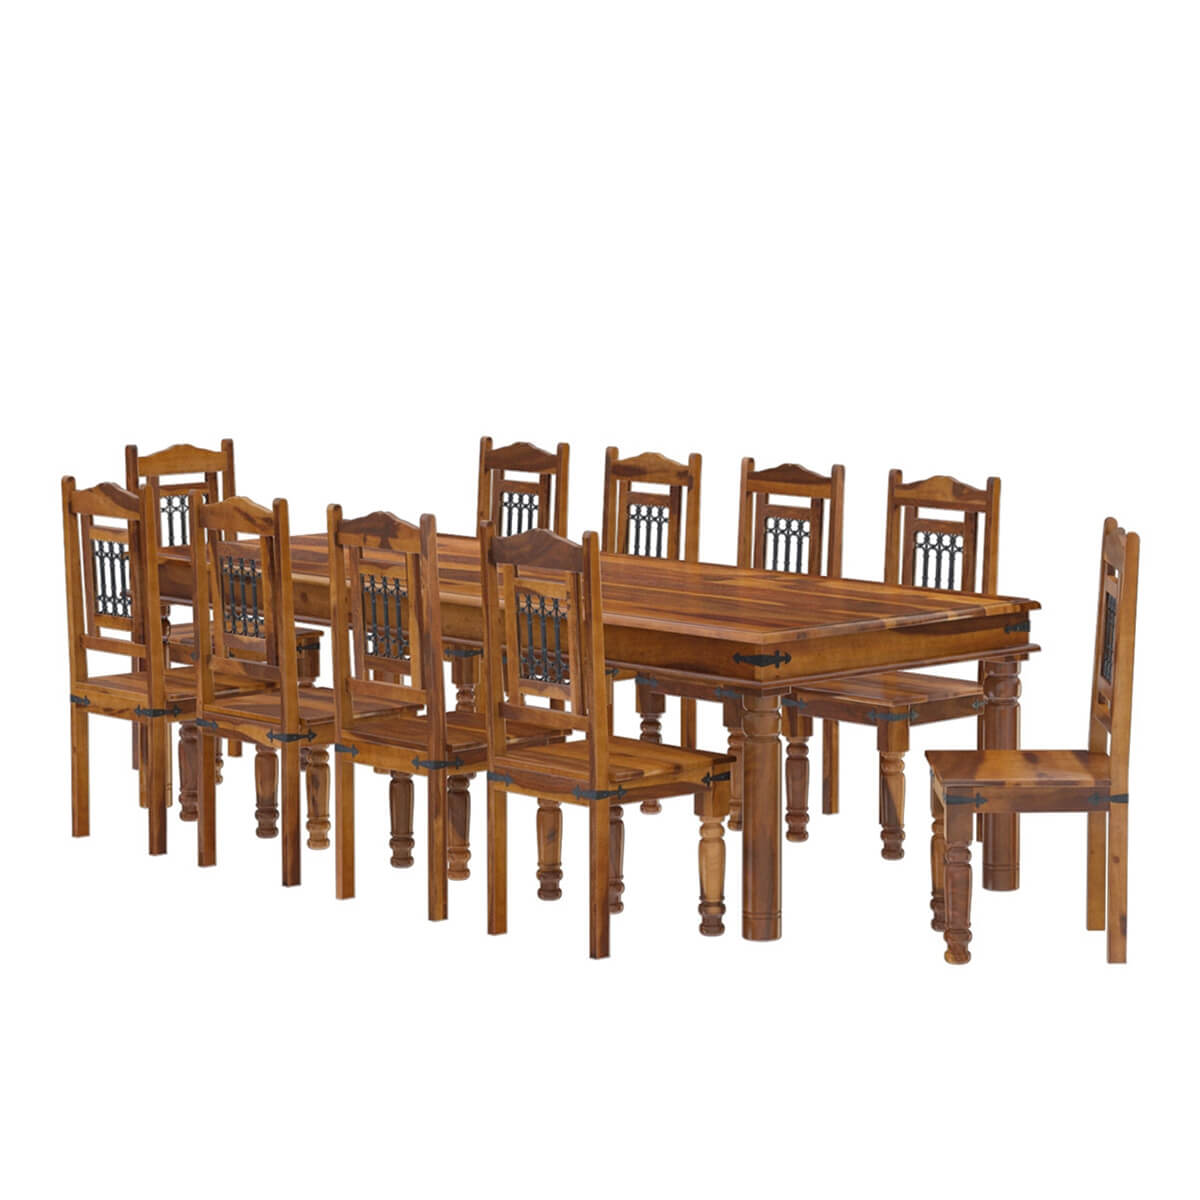 rustic solid wood large dining room table chair set furniture